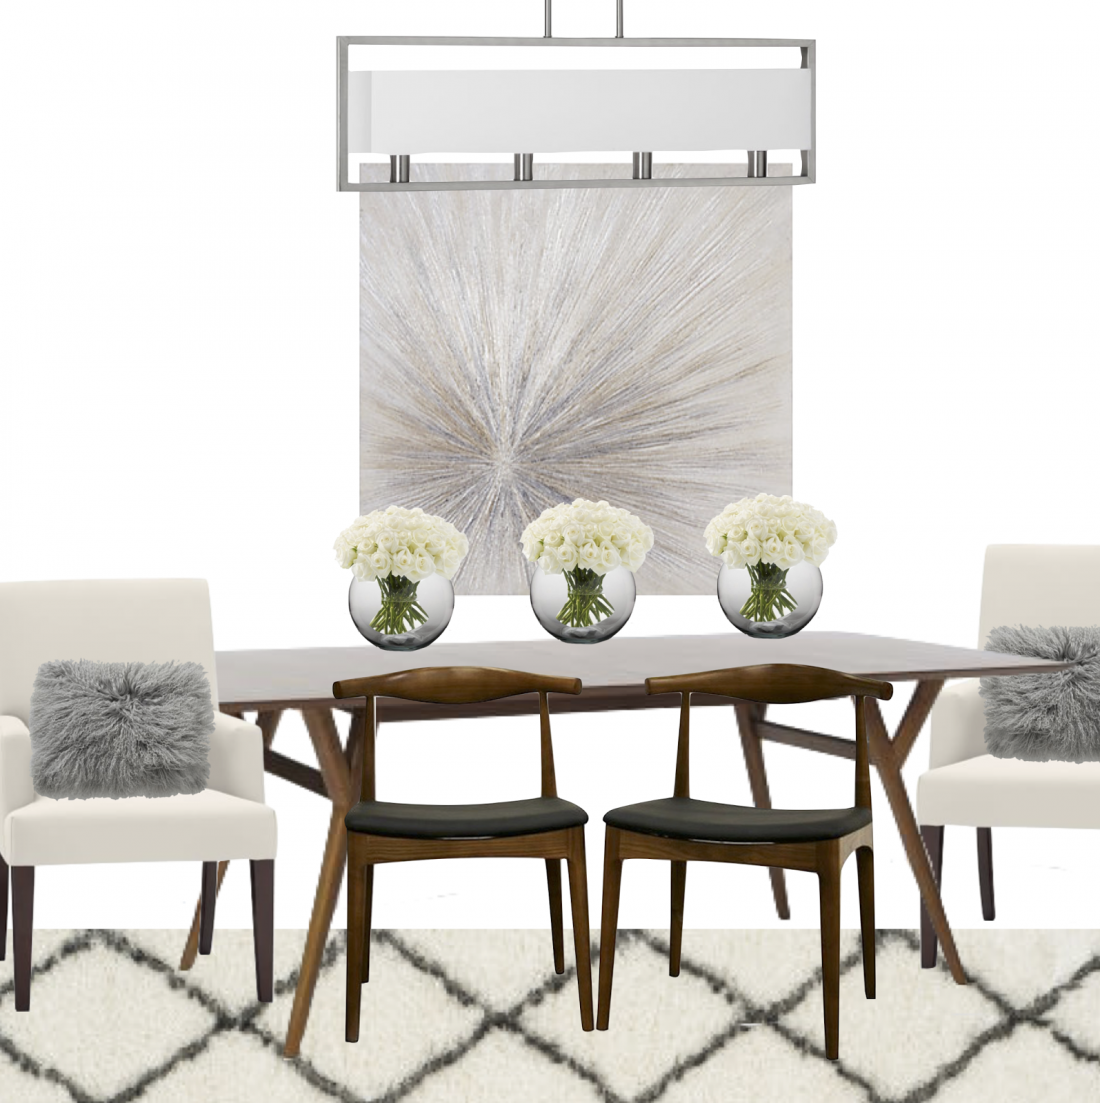 Dining Rooms Archives - Page 13 of 30 - copycatchic